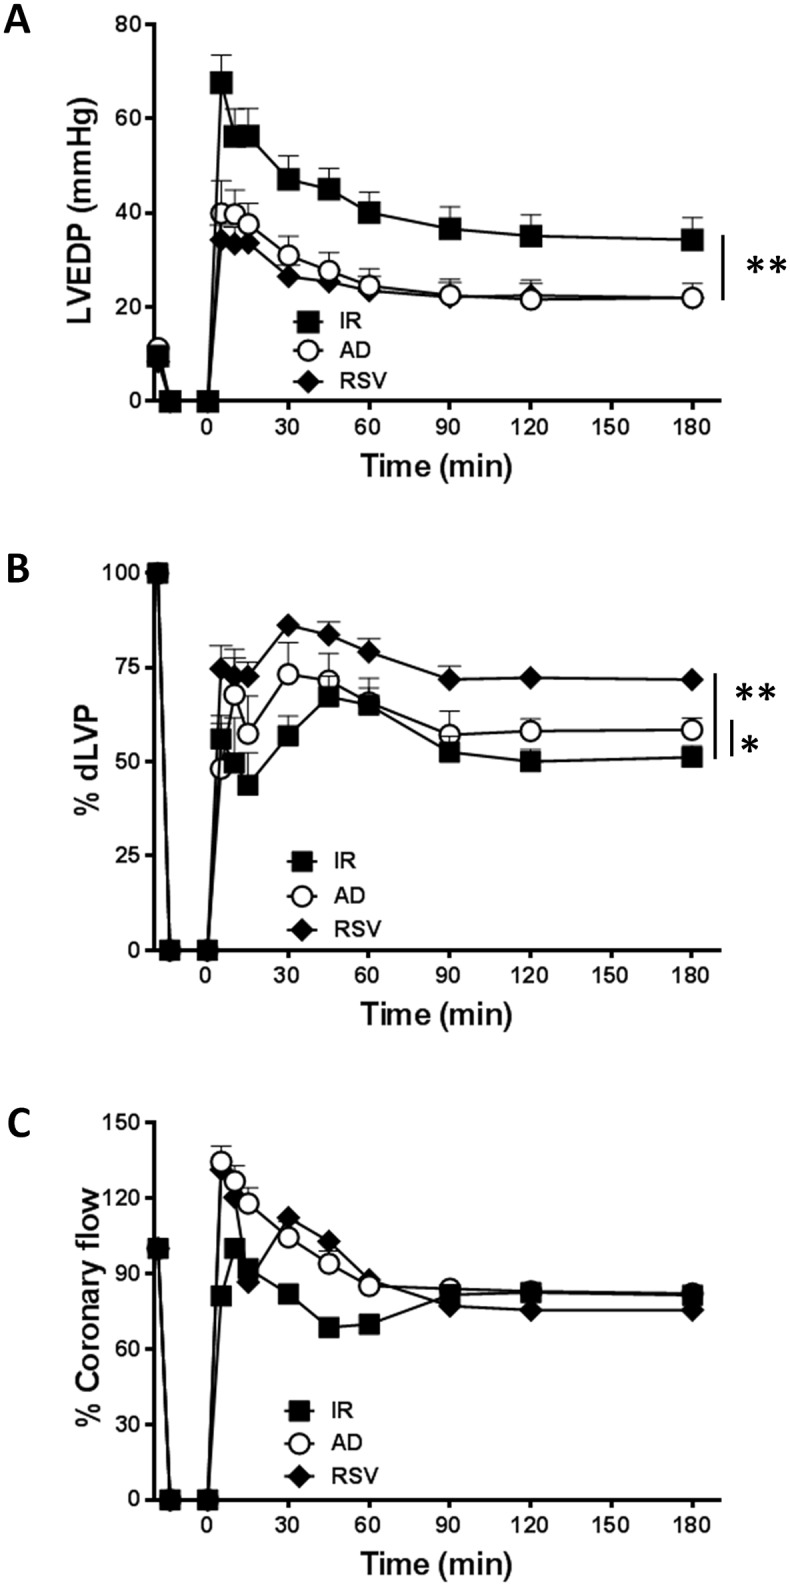 AD preconditioning improves post-ischemic recovery of ventricular function with effects partially overlapping those induced by RSV preconditioning. Hearts preconditioned with adiponectin (AD) were compared to hearts exposed to vehicle-administration (I/R) or resveratrol (RSV), used as a positive control of <t>SIRT-1</t> activation. A. Diastolic function . Left ventricular end diastolic pressure (LVEDP, mmHg) during the 180 min of reperfusion following 30 min of global ischemia (**p